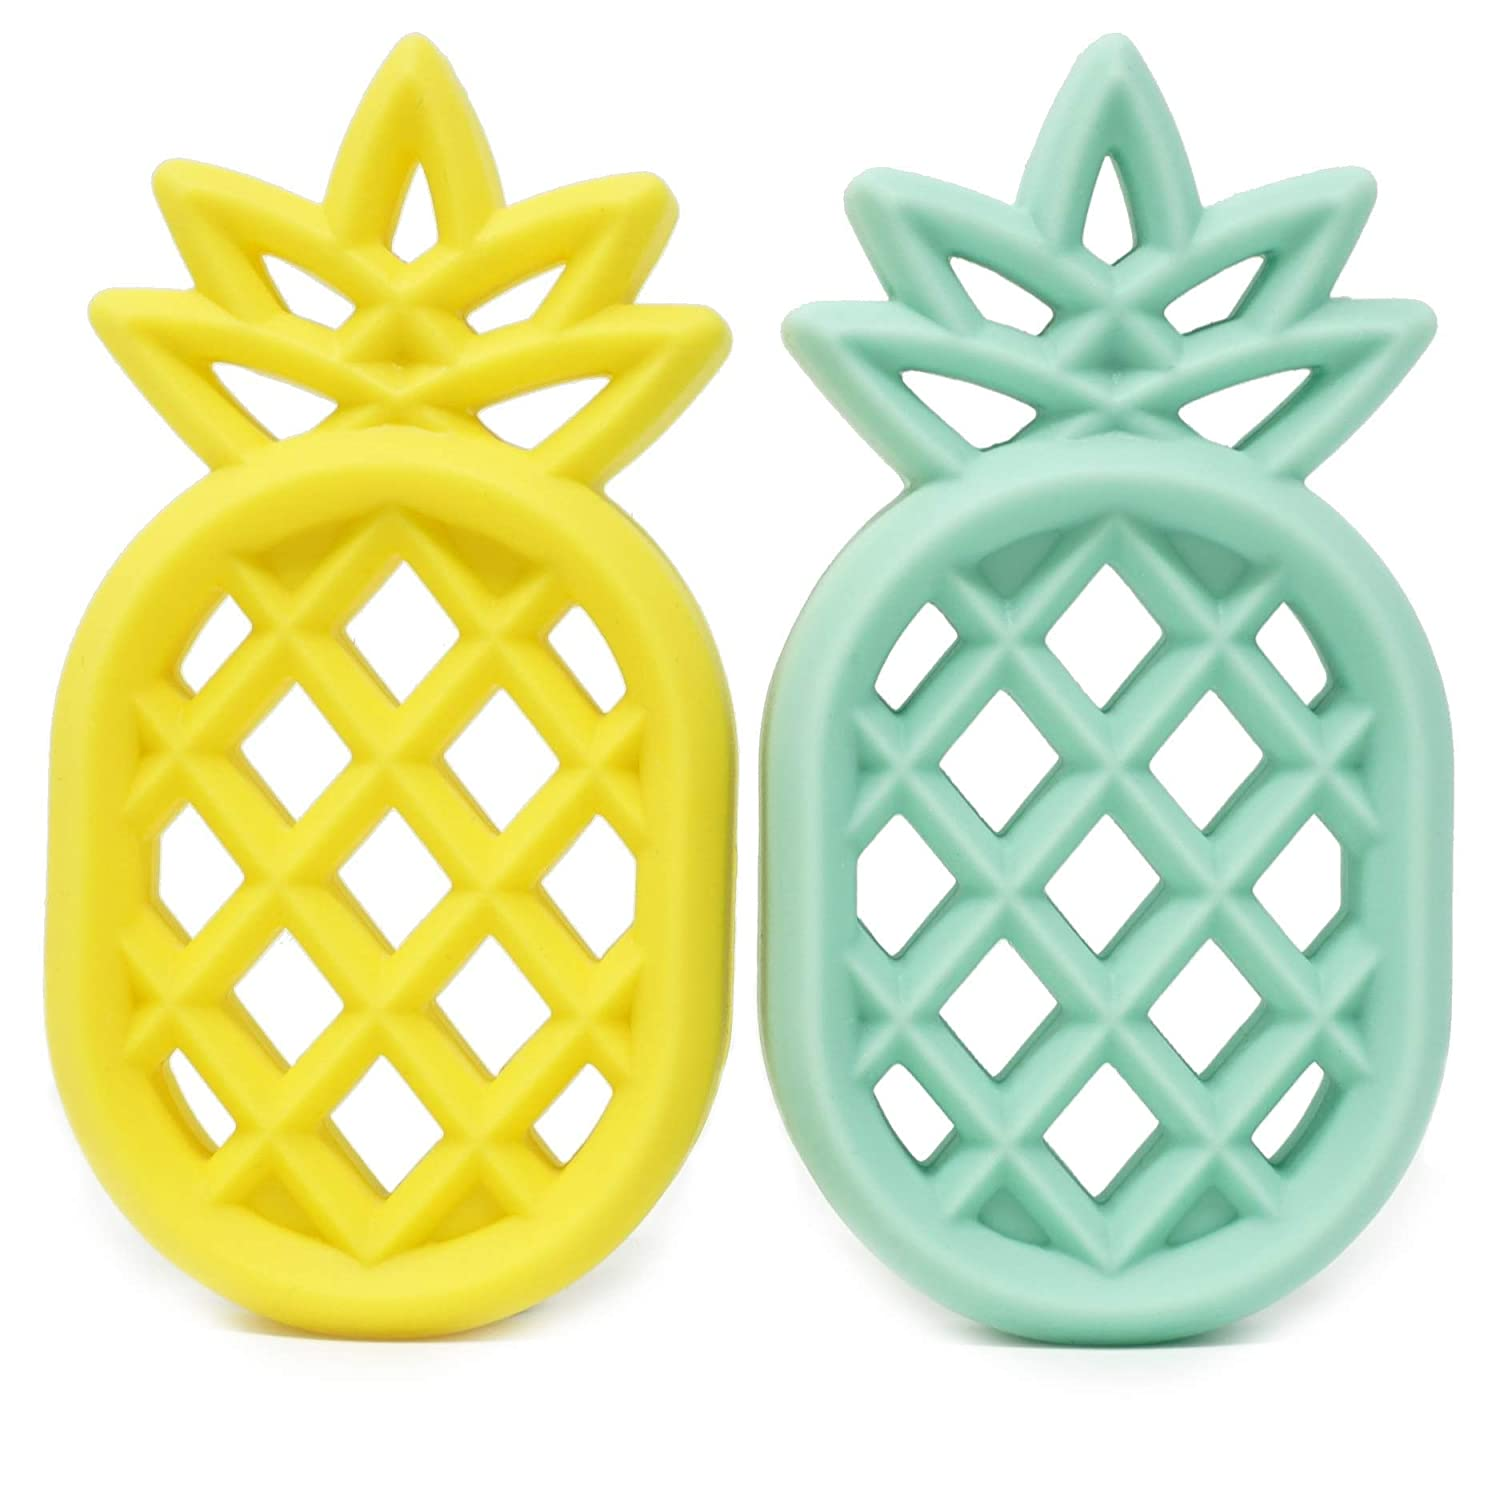 Meerkatto Silicone Pineapple Teether (Yellow and Mint)